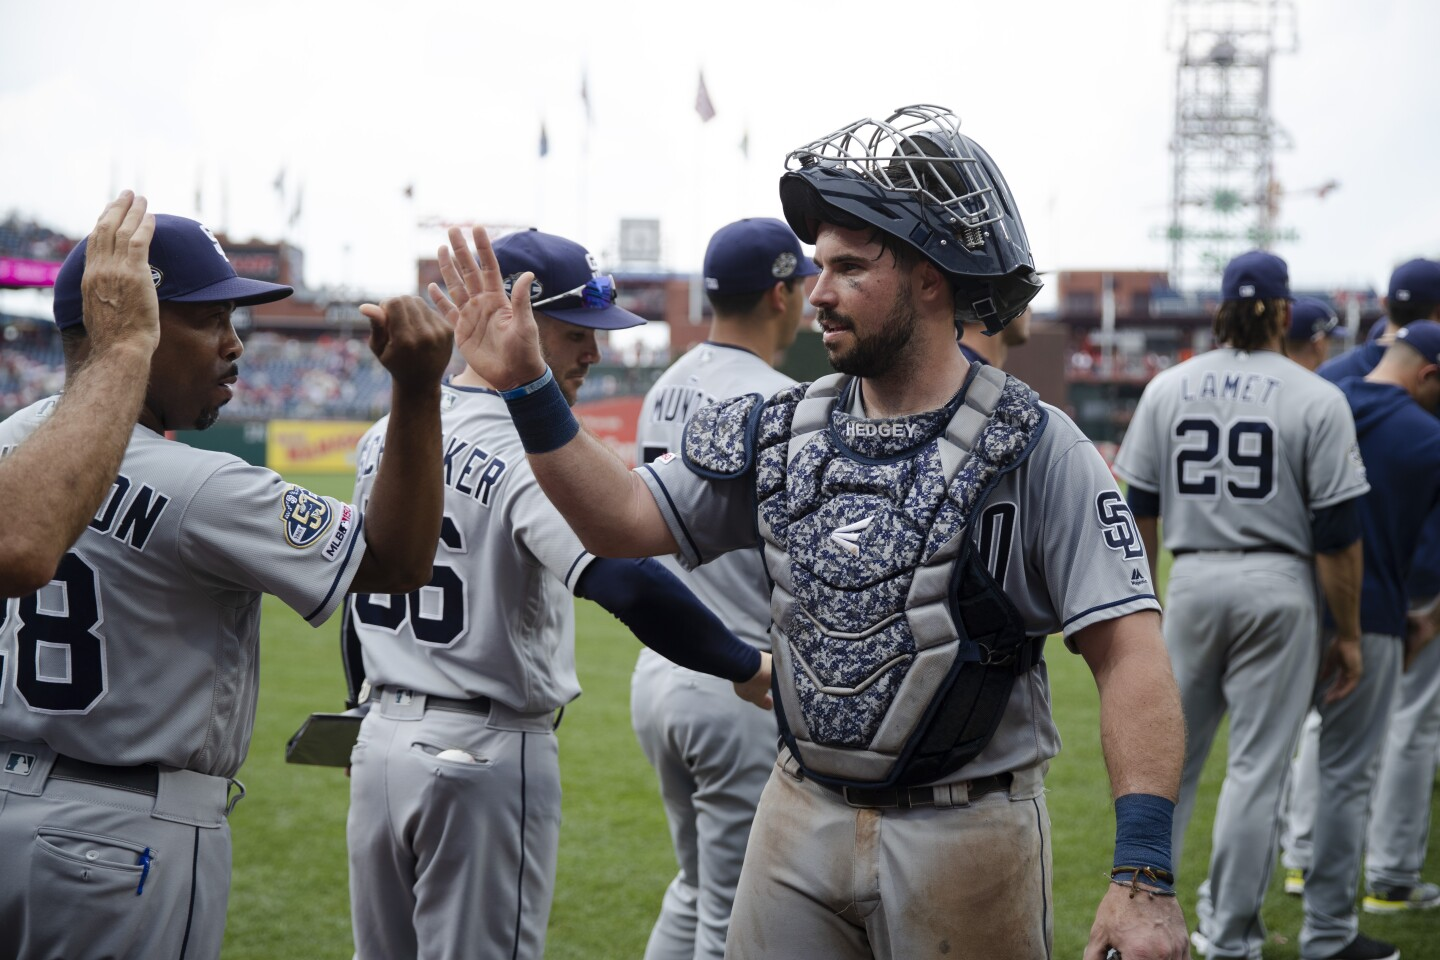 San Diego Padres' Austin Hedges, right, walks off the field after a baseball game against the Philadelphia Phillies, Sunday, Aug. 18, 2019, in Philadelphia. (AP Photo/Matt Rourke)